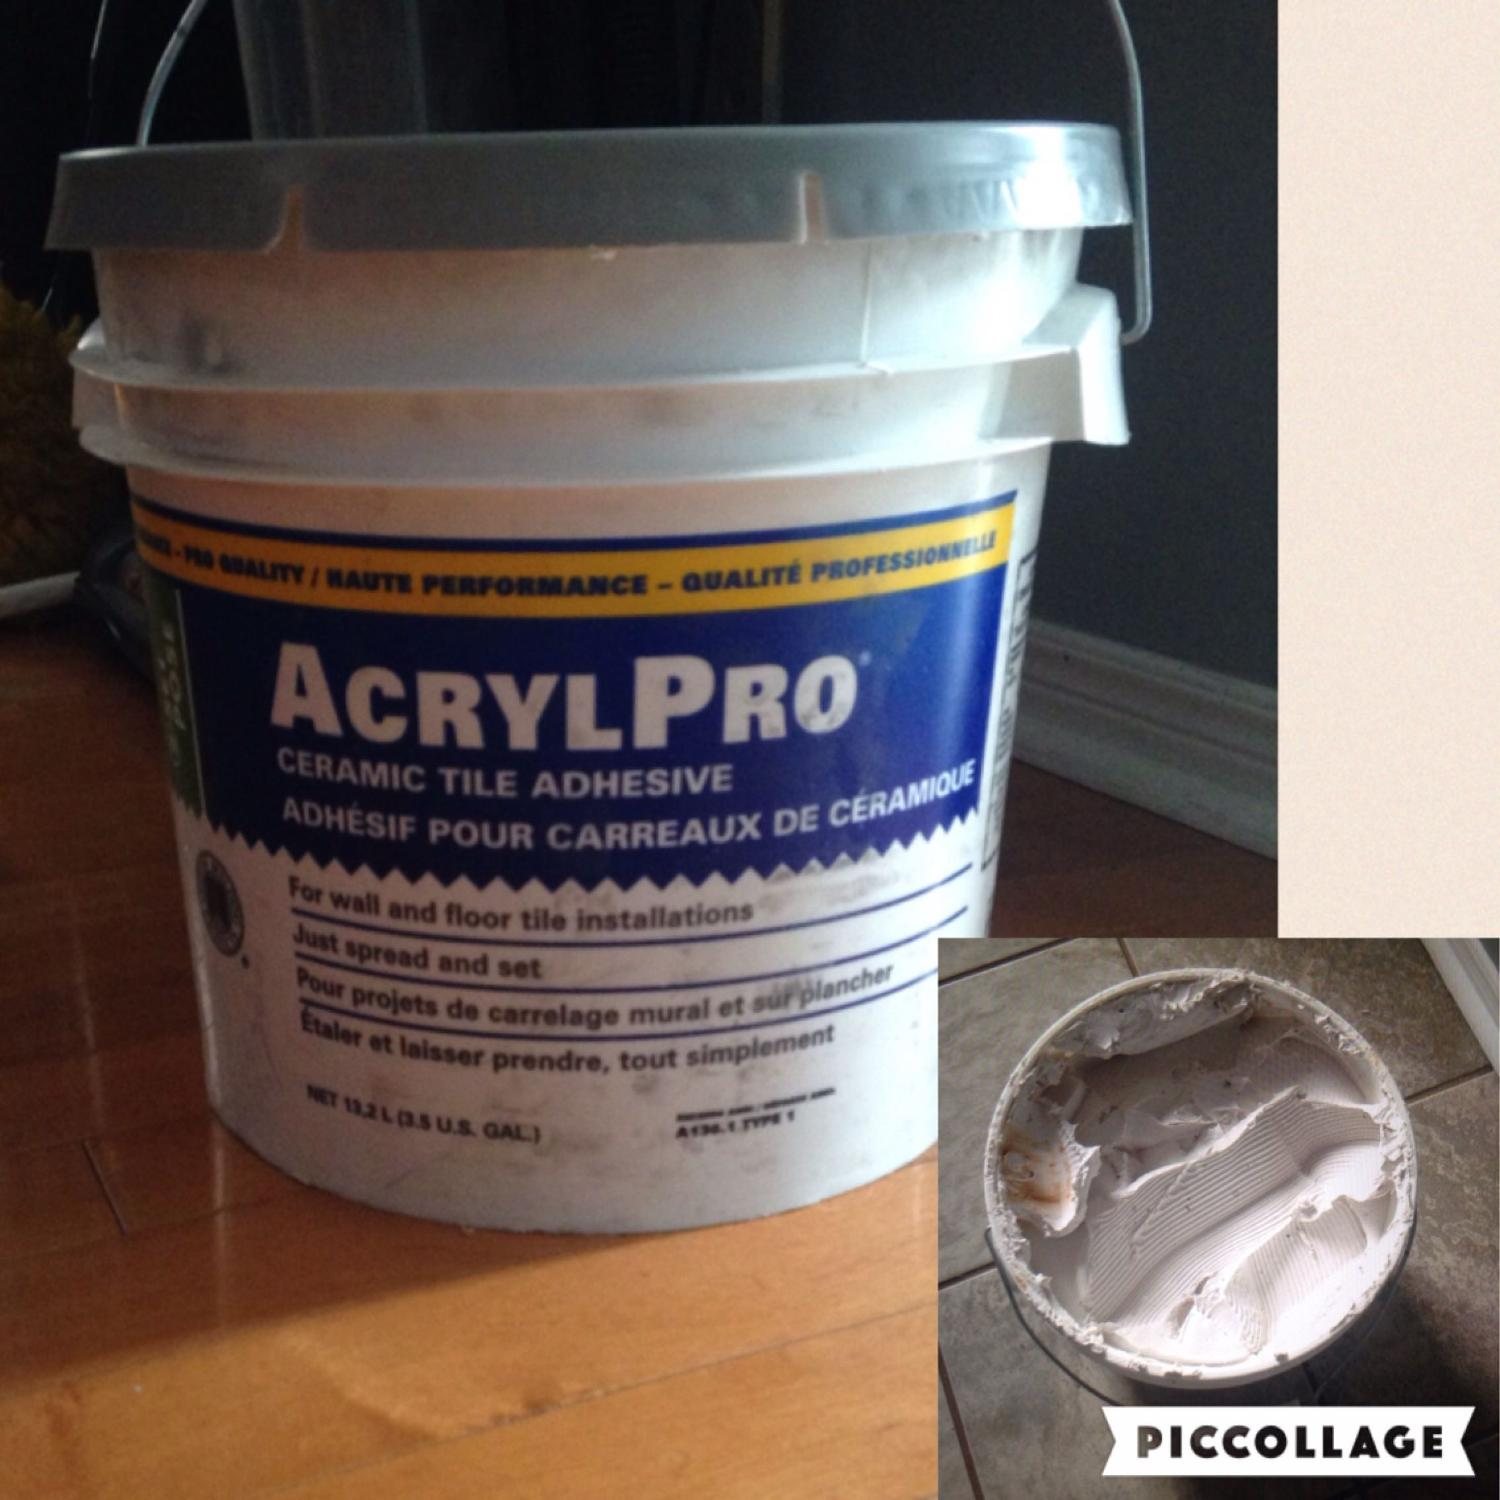 Find More Acrylpro Ceramic Tile Adhesive For Sale At Up To 90 Off